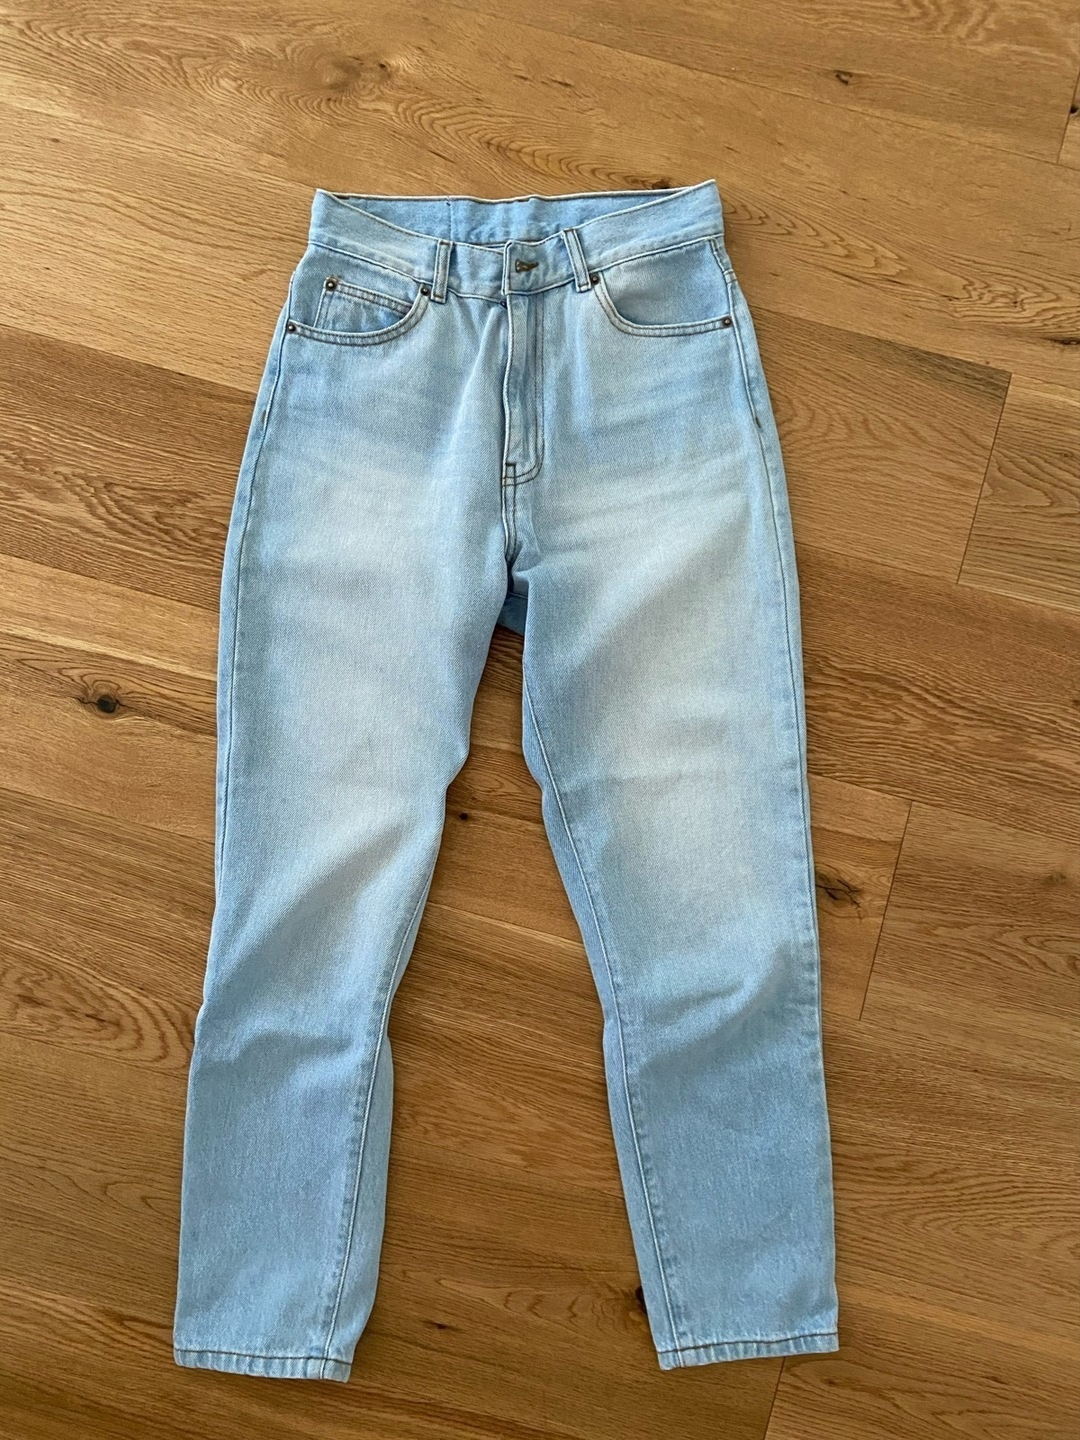 Damen hosen & jeans - DR. DENIM photo 1